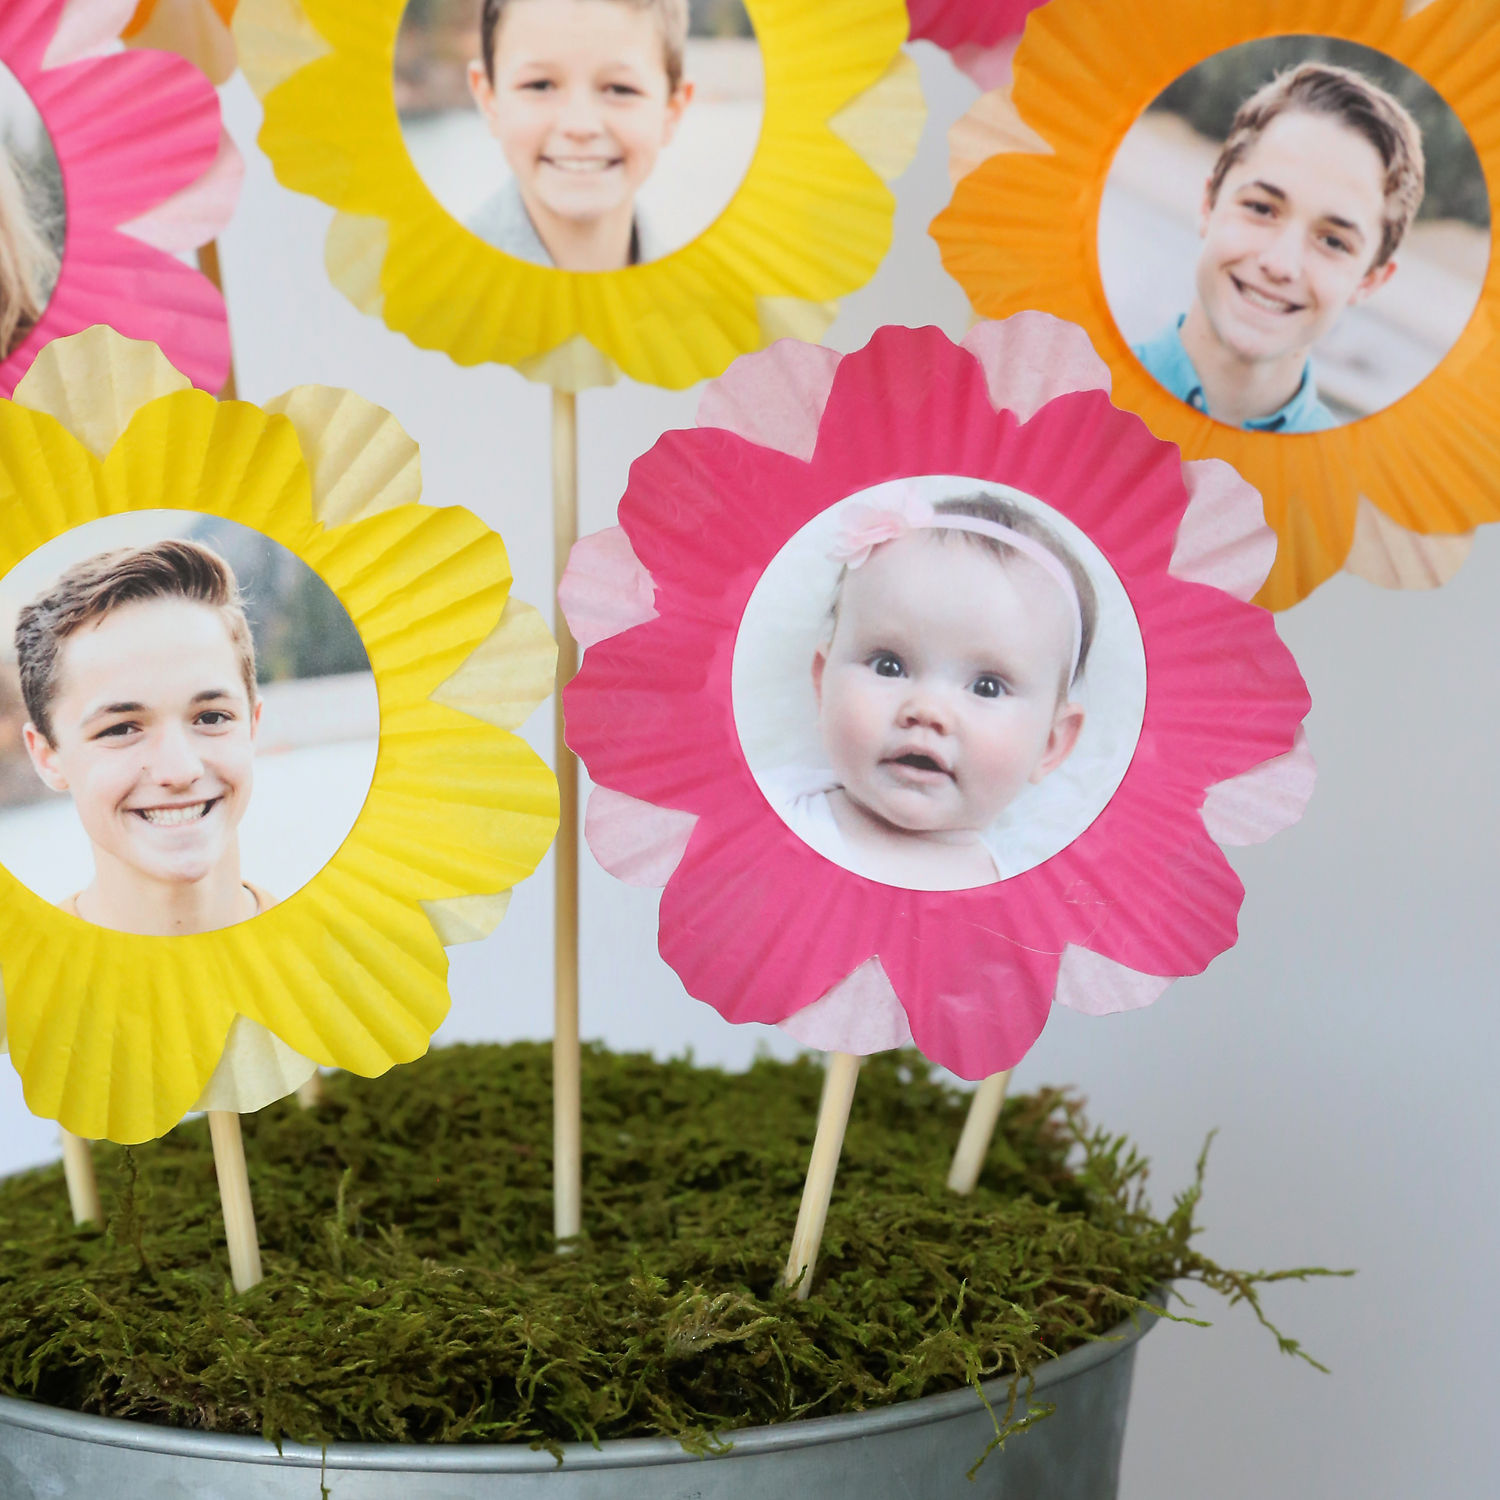 Flowers made from cupcake liners and photos